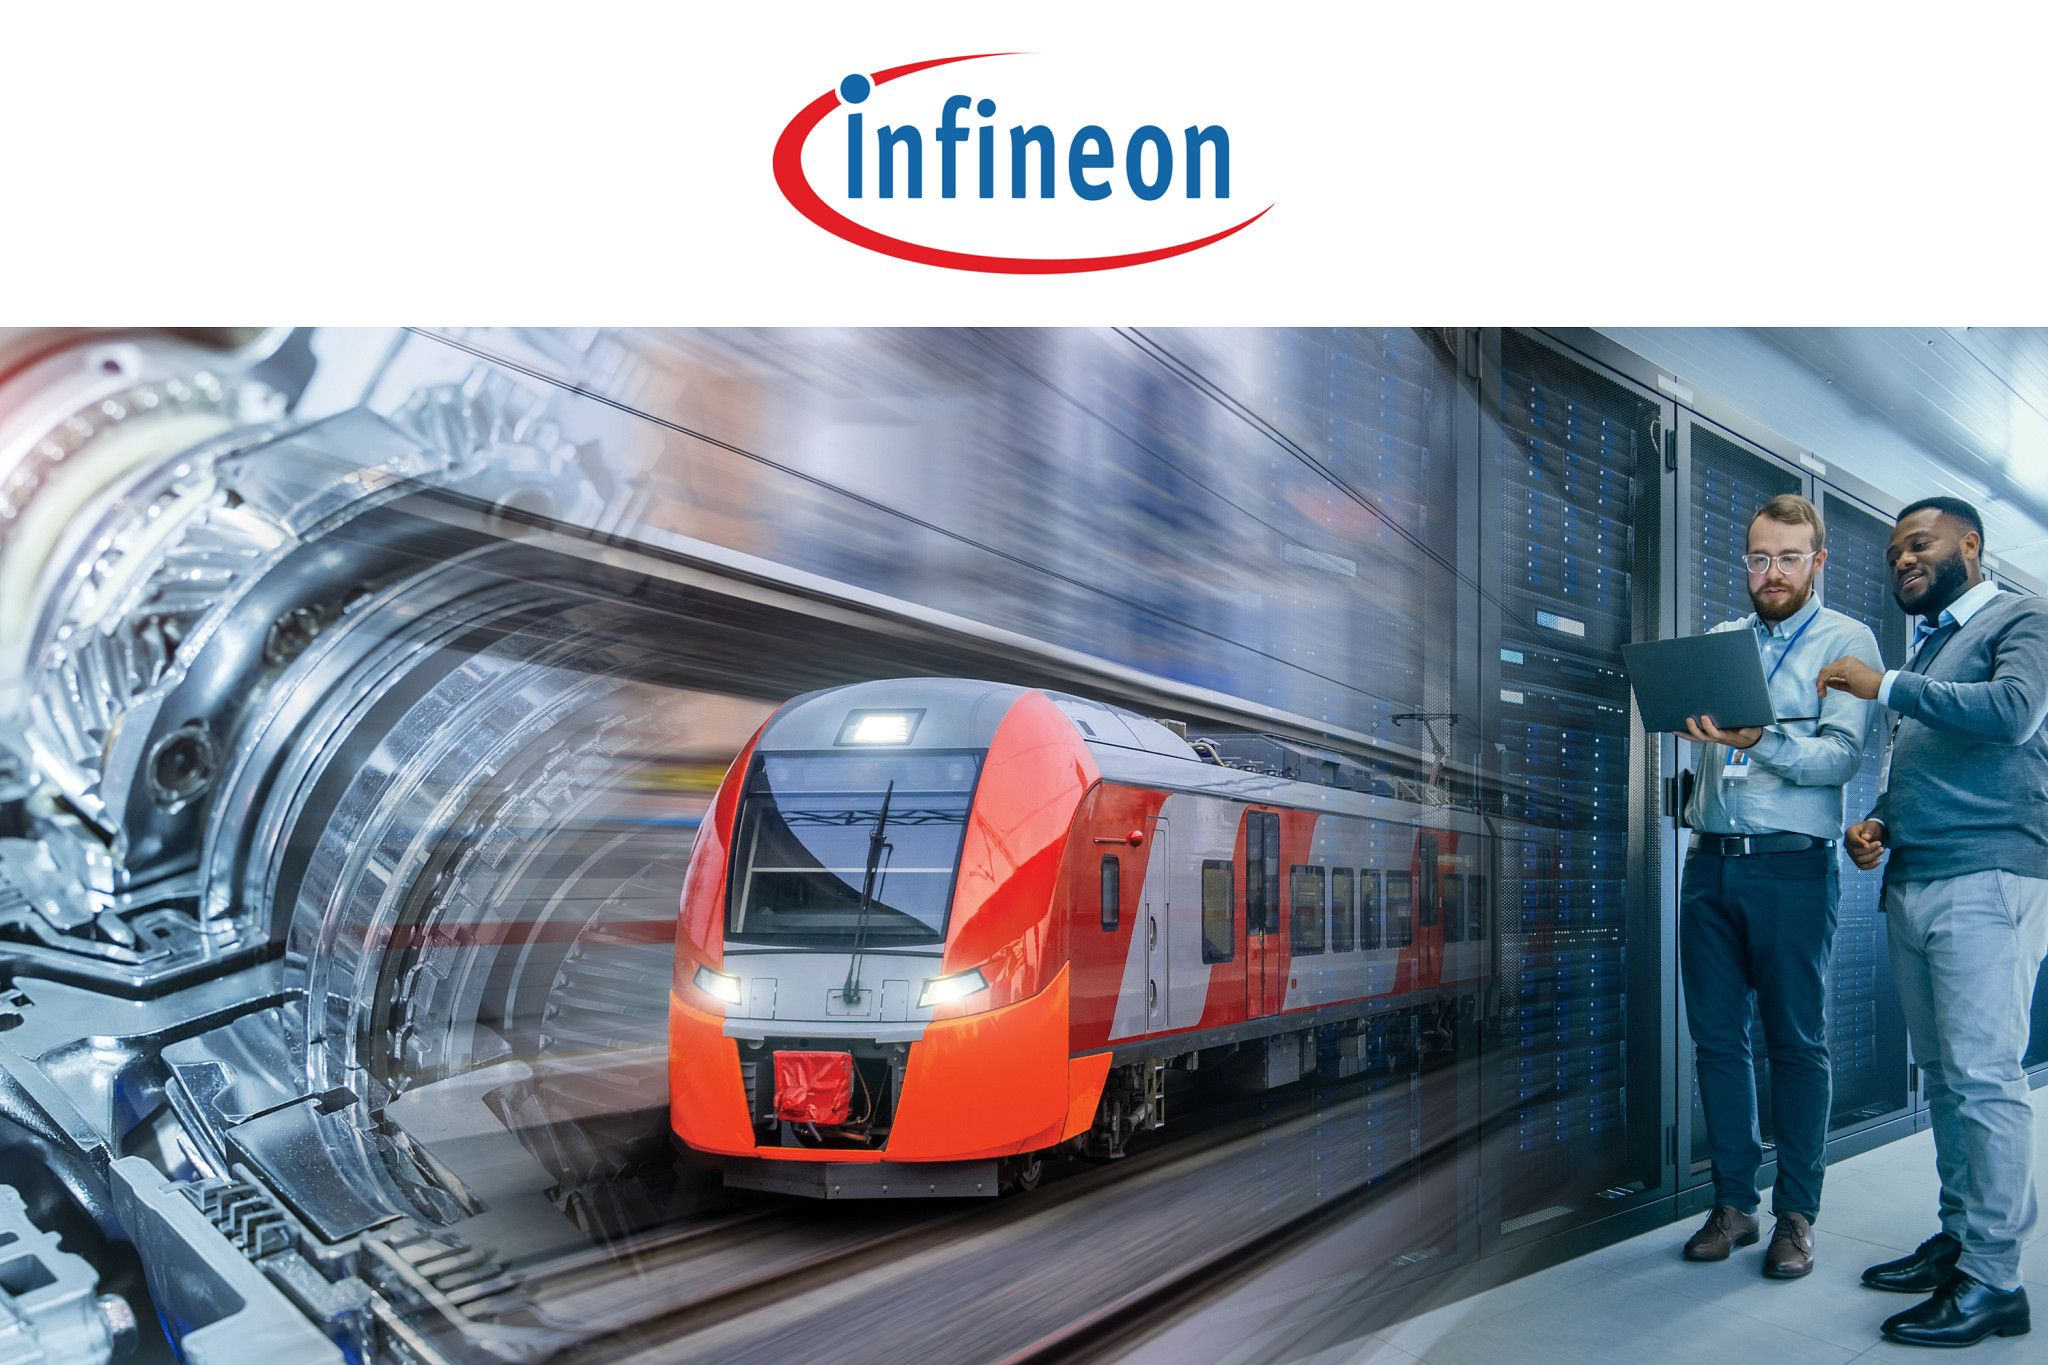 Infineon_MOSFET_campaign_image_FEB2021